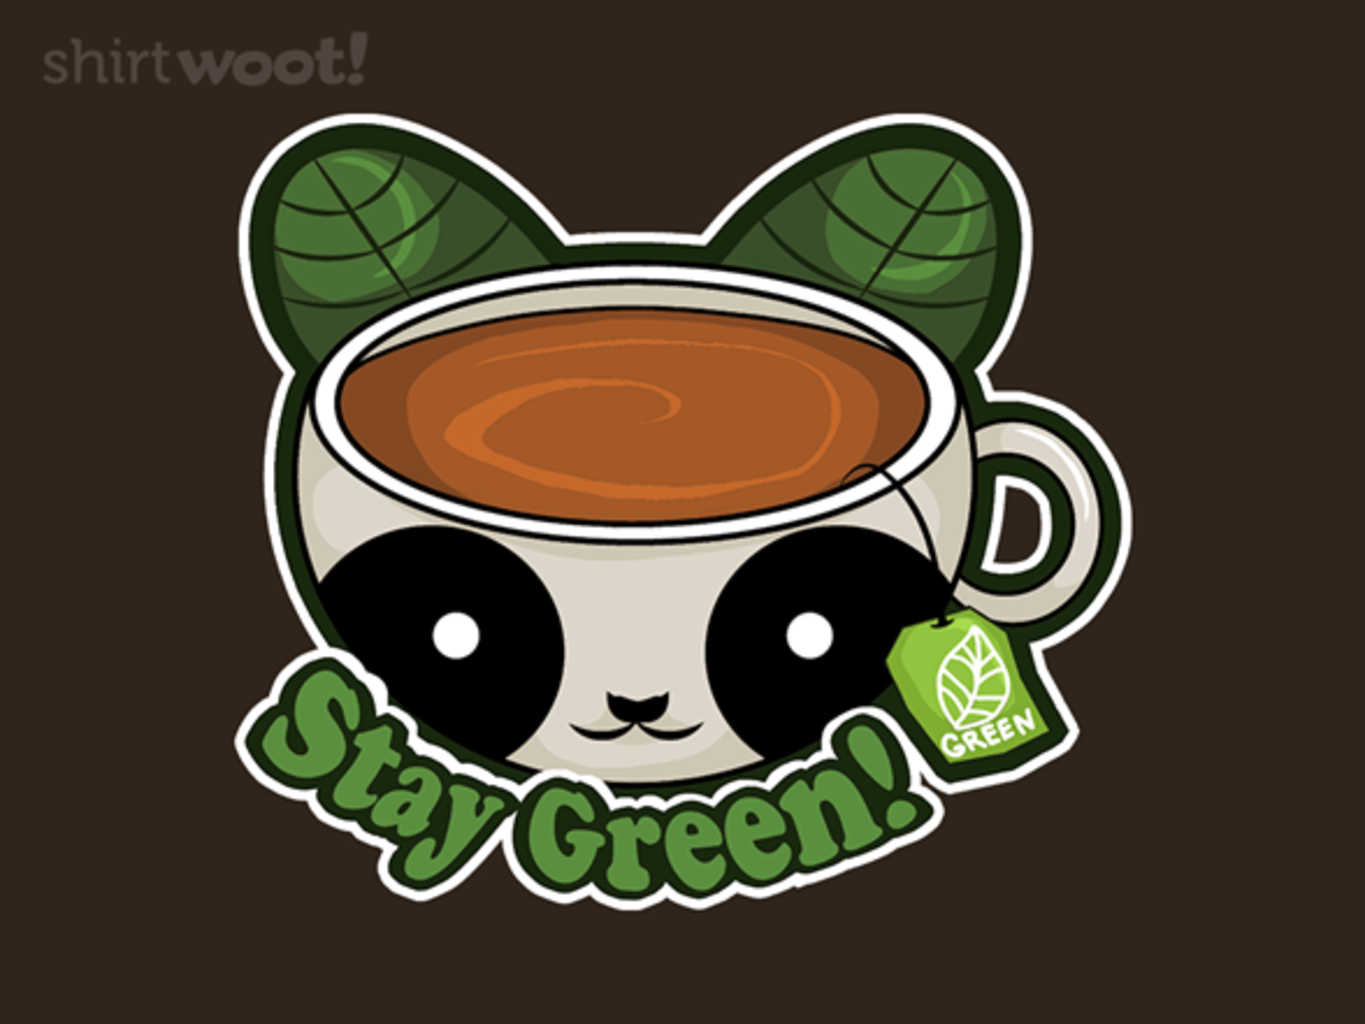 Woot!: Stay Green - $8.00 + $5 standard shipping